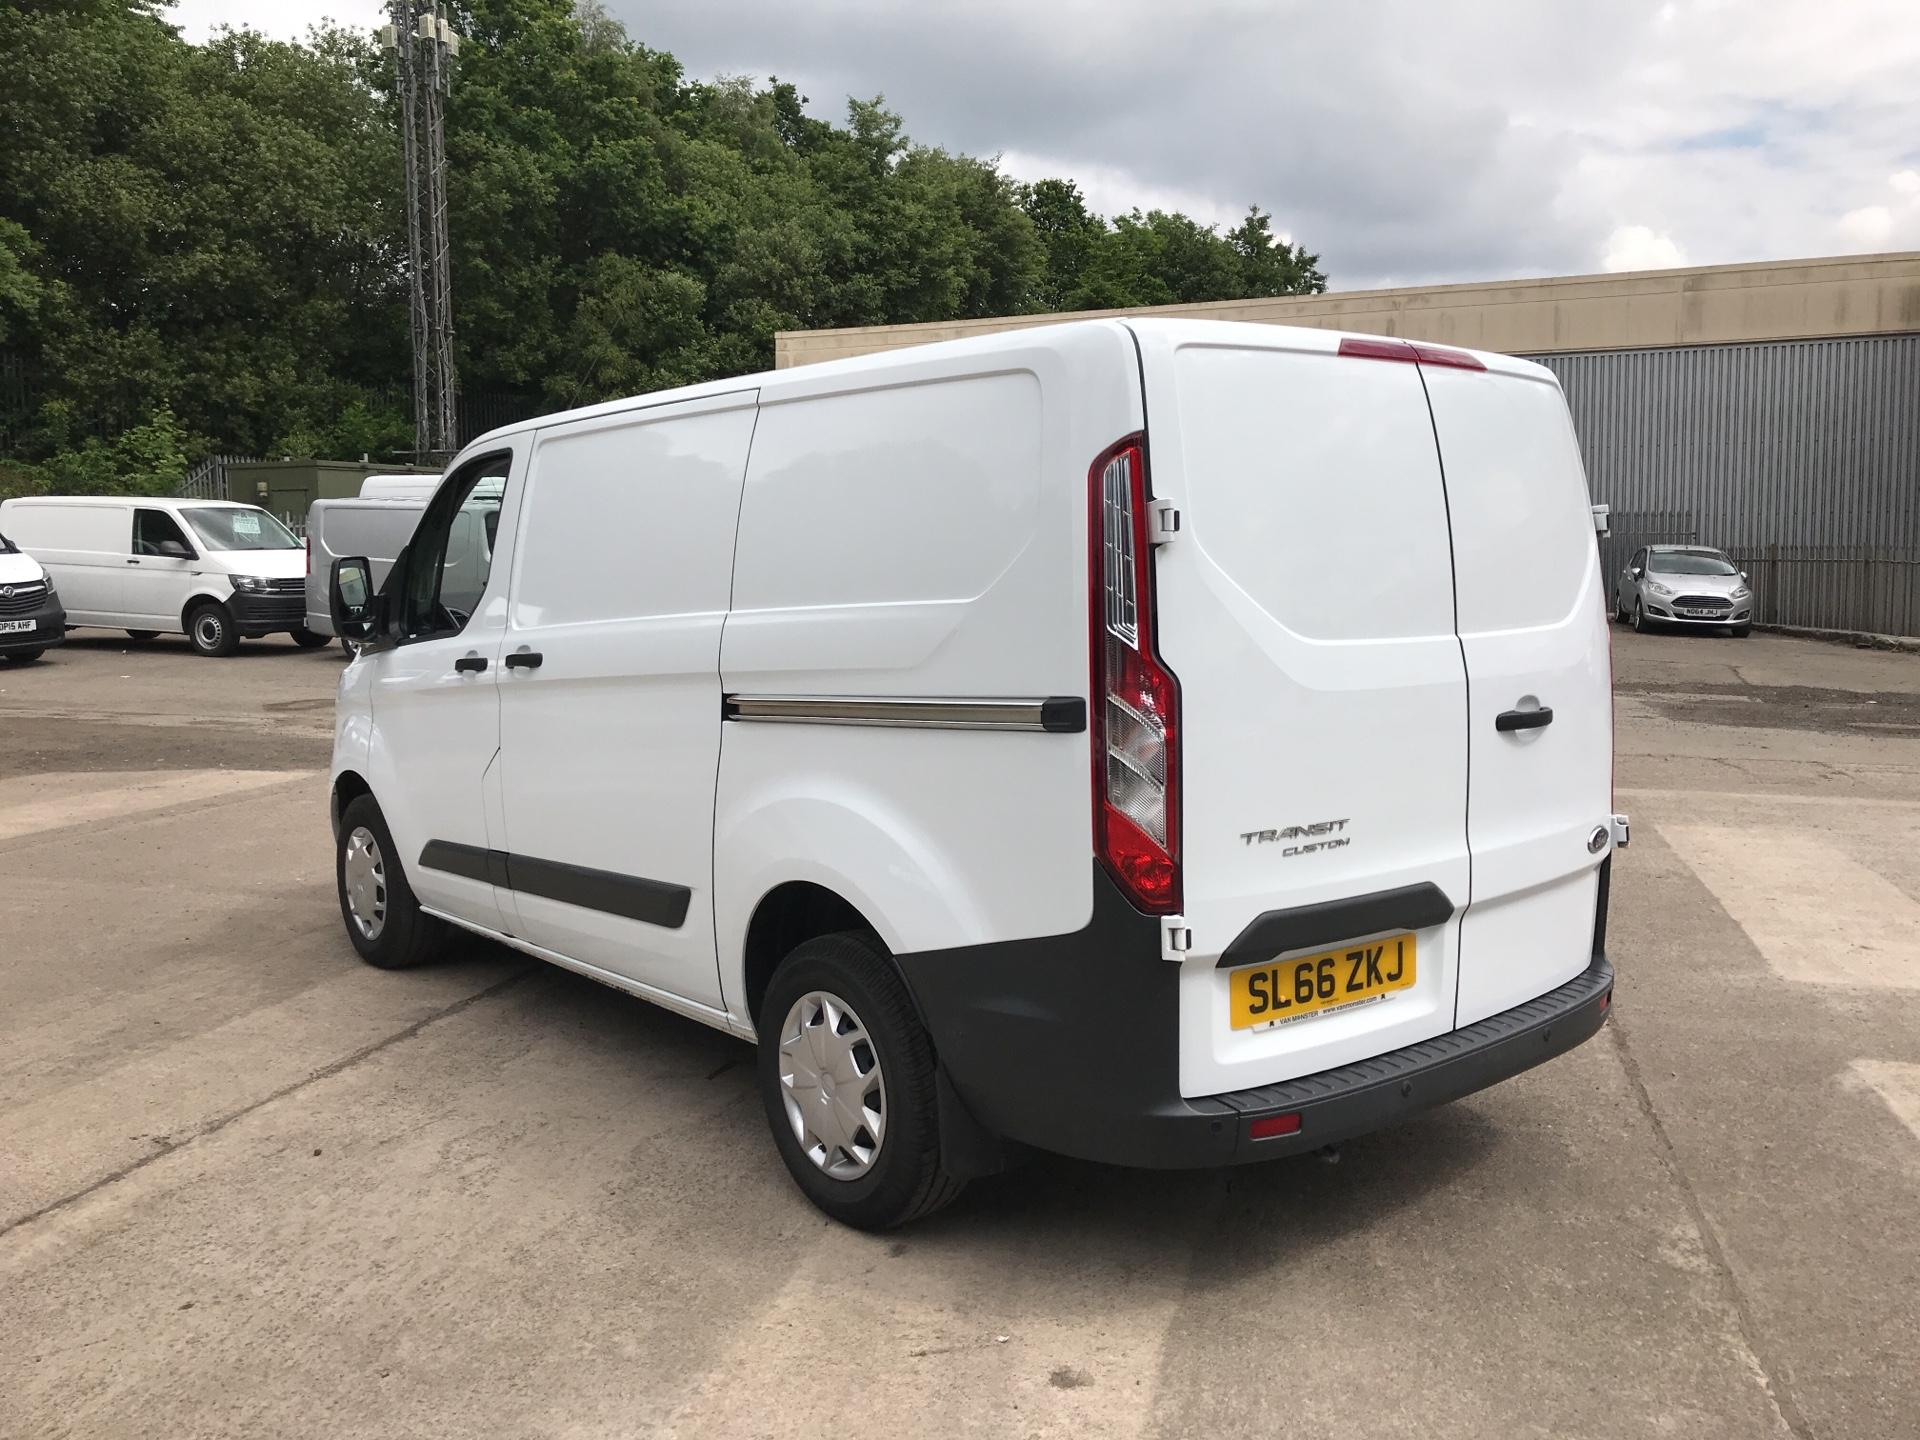 2016 Ford Transit Custom 270 L1 DIESEL FWD 2.0 TDCI 130PS LOW ROOF TREND EURO 6 (SL66ZKJ) Thumbnail 5